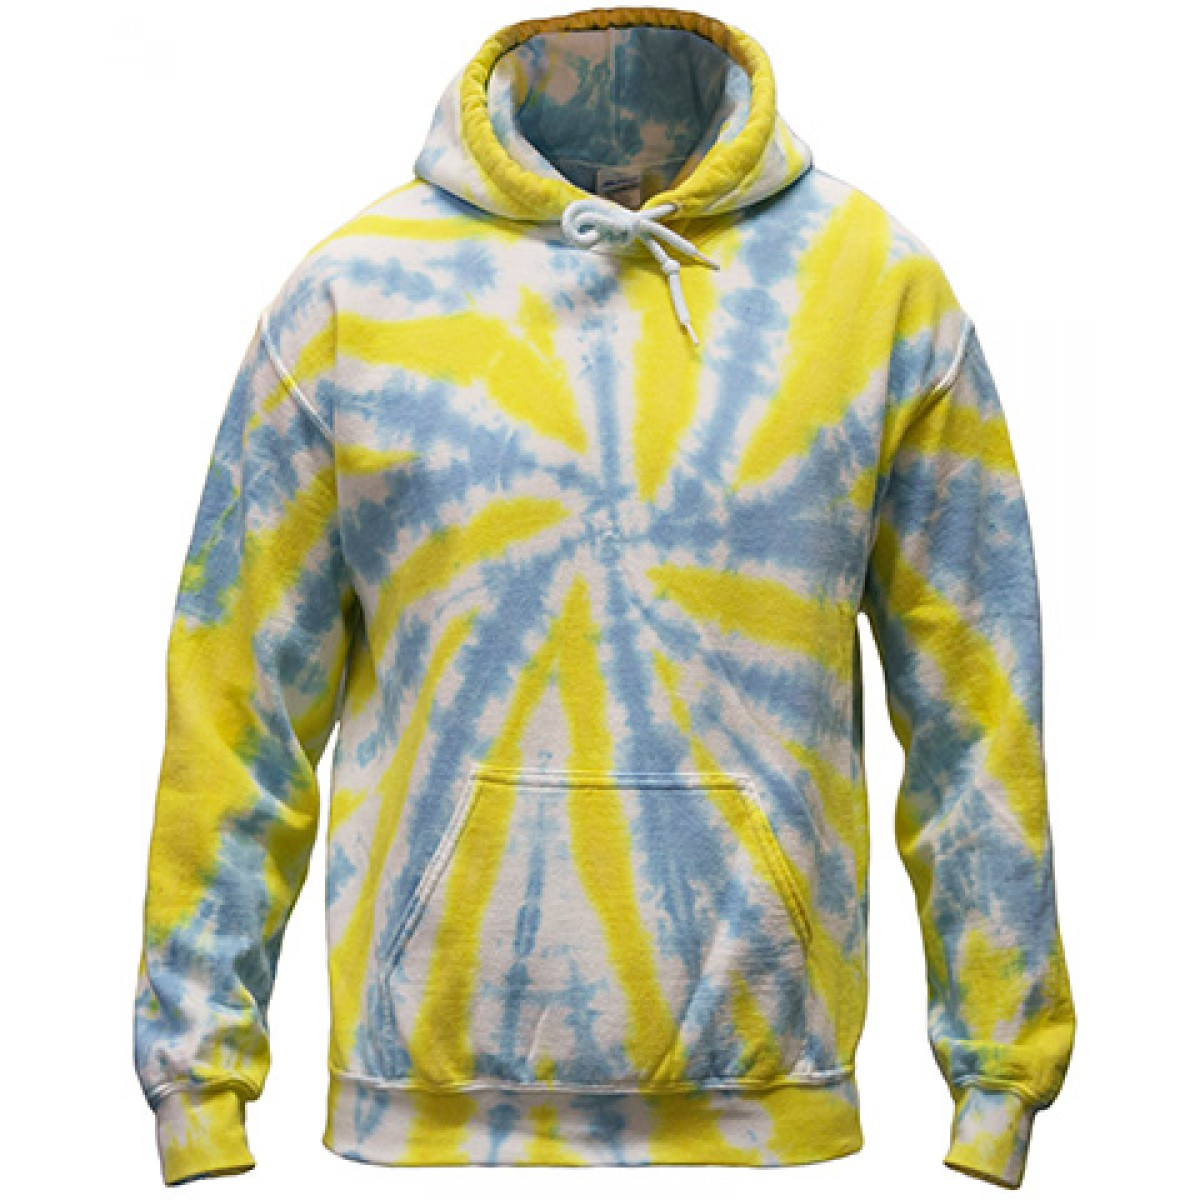 Tie-Dye Pullover Hooded Sweatshirt-Blue/Yellow-3XL